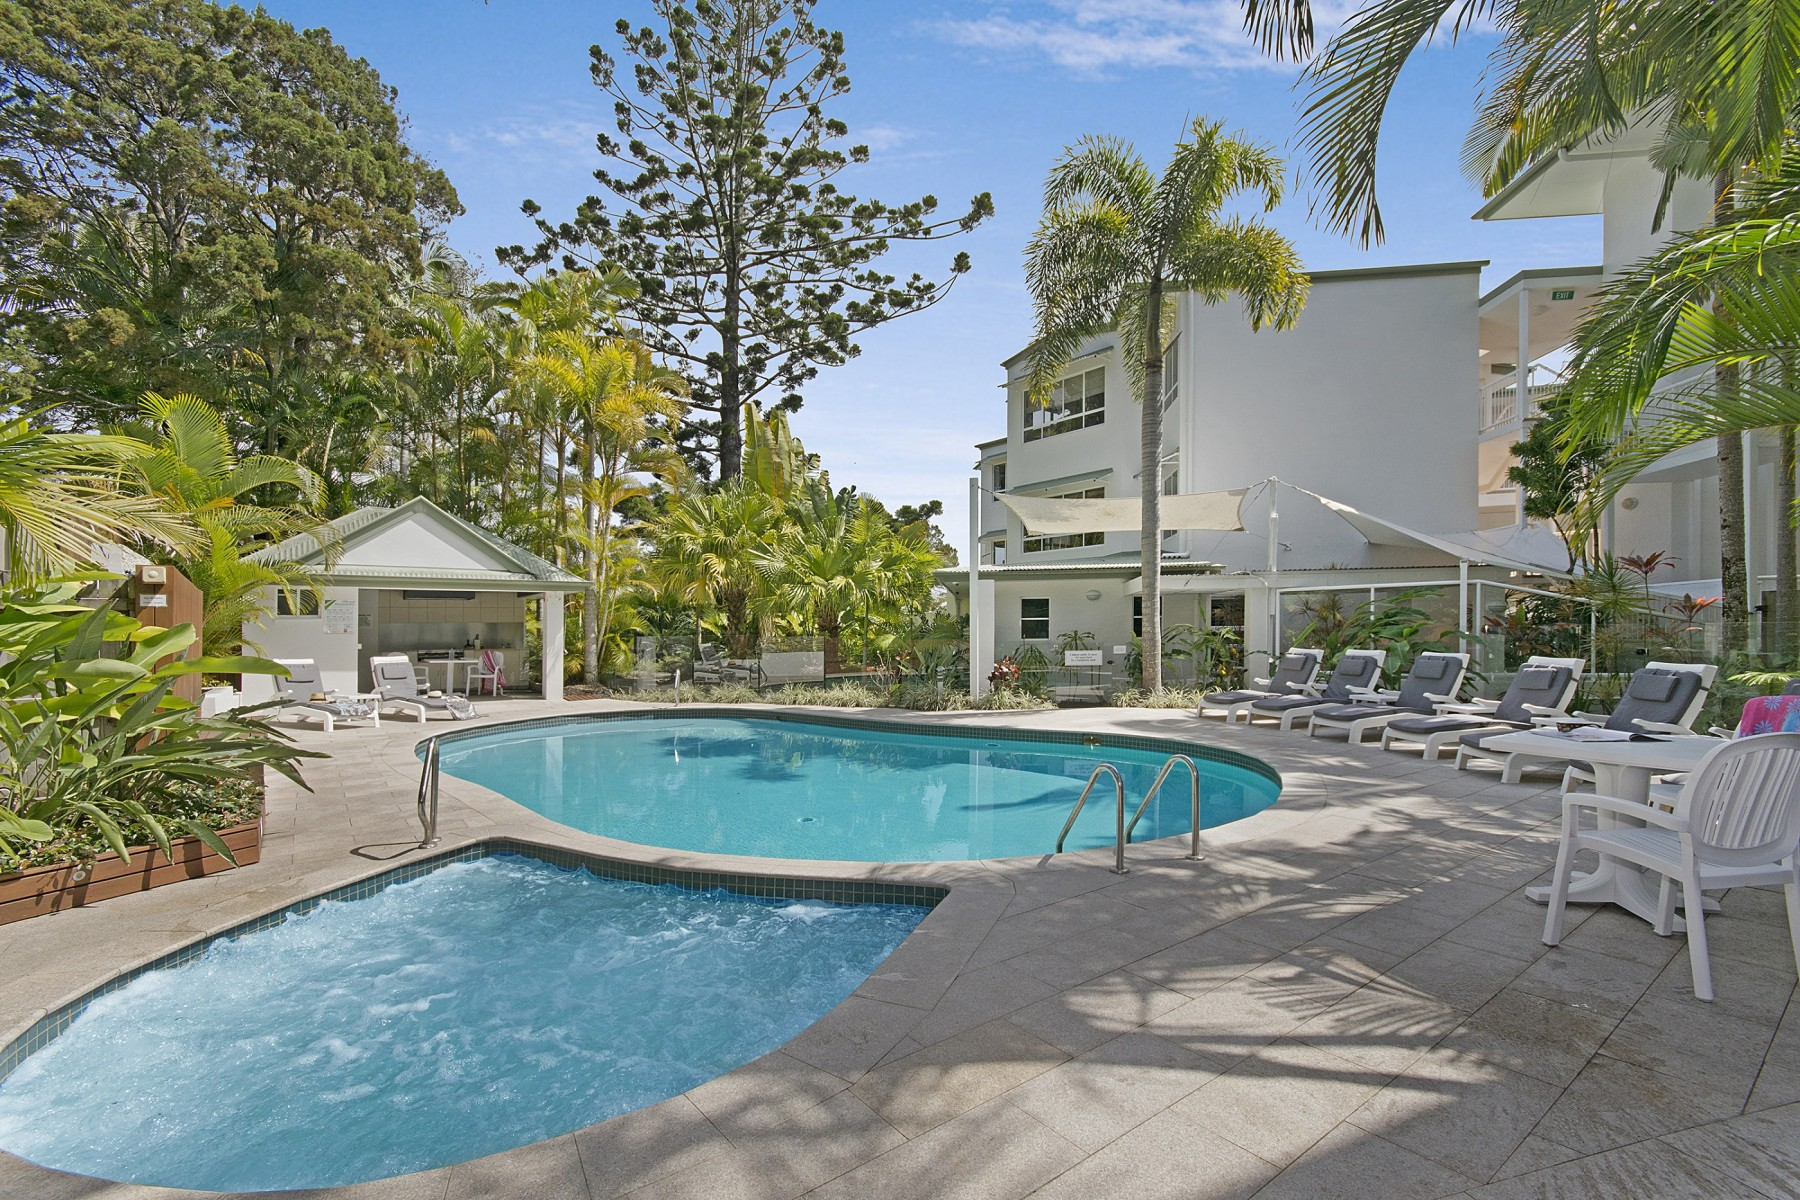 1_The Lookout Resort Noosa